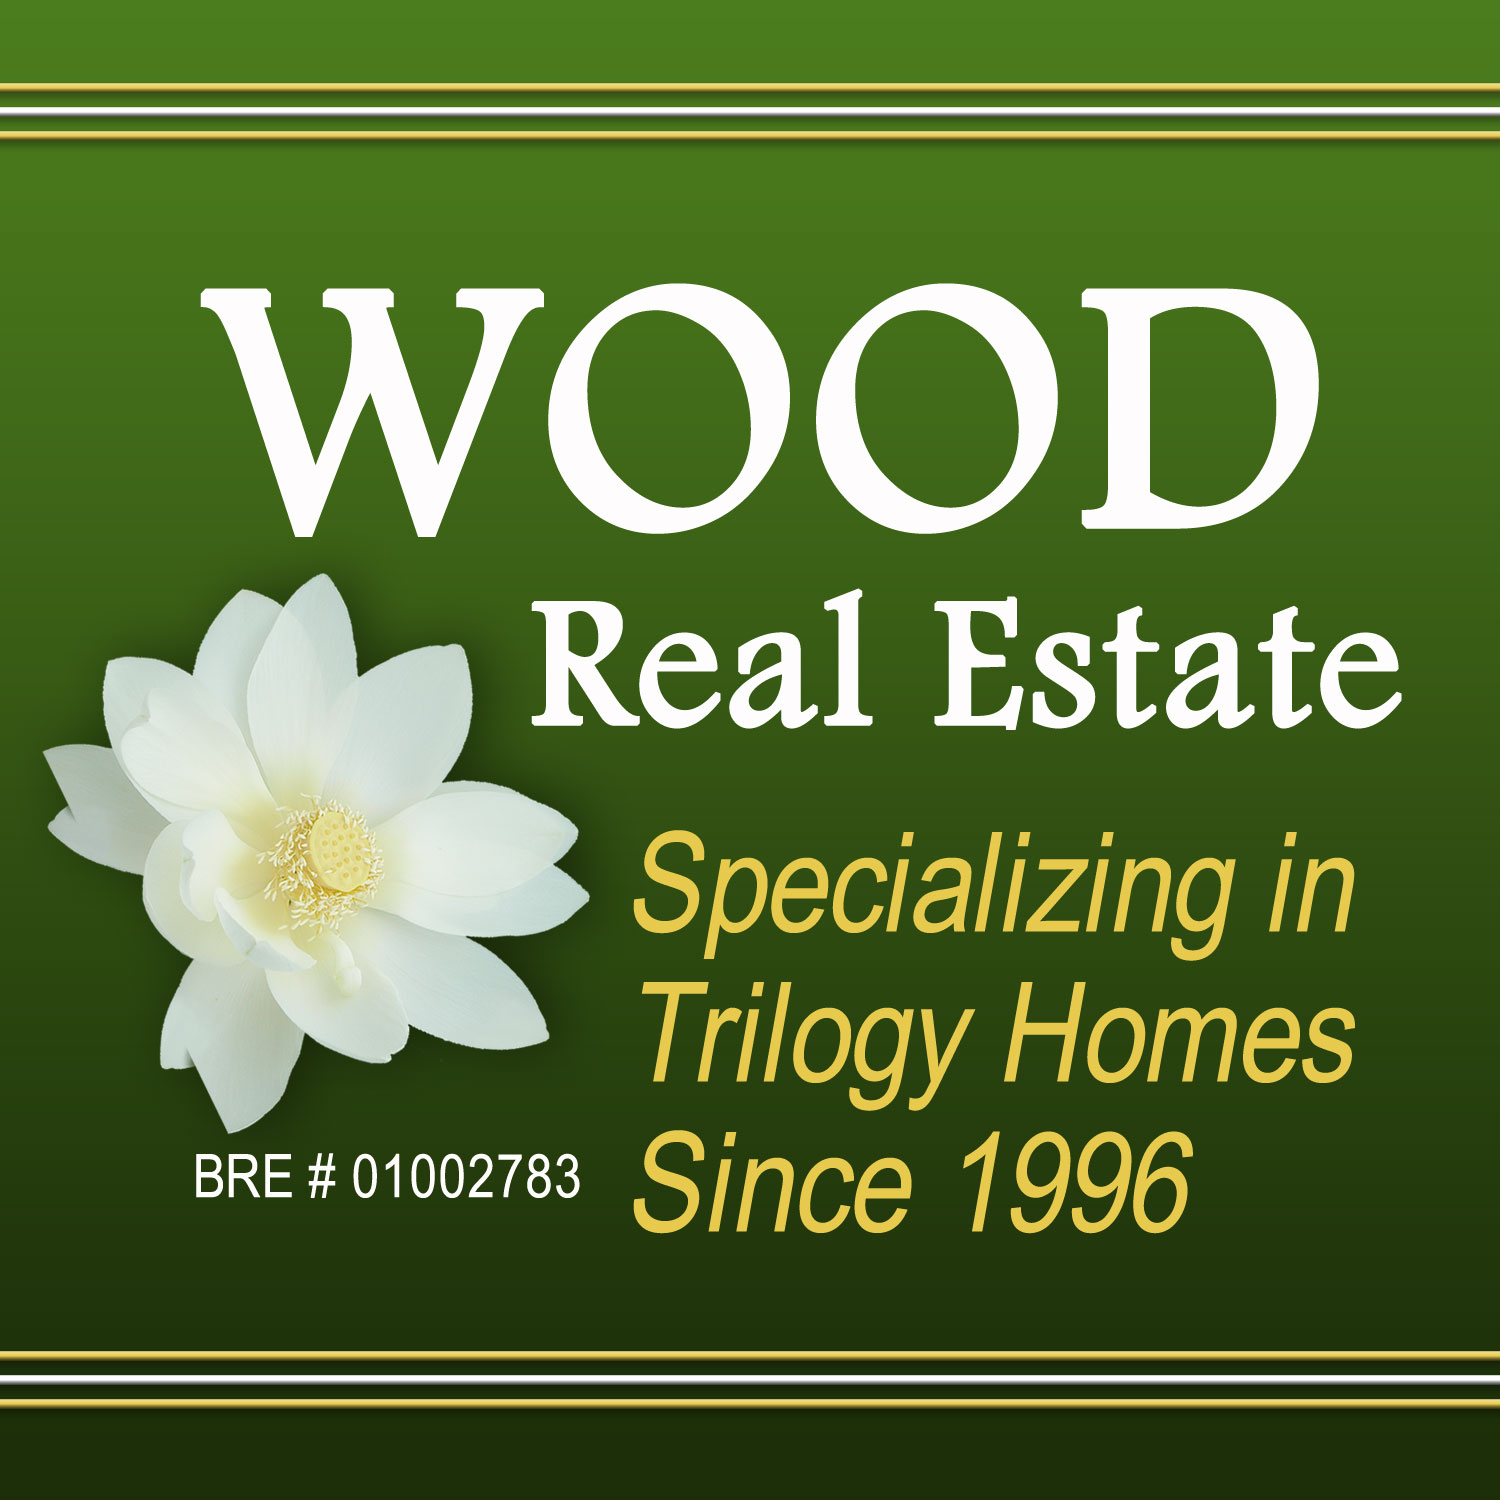 Wood Real Estate